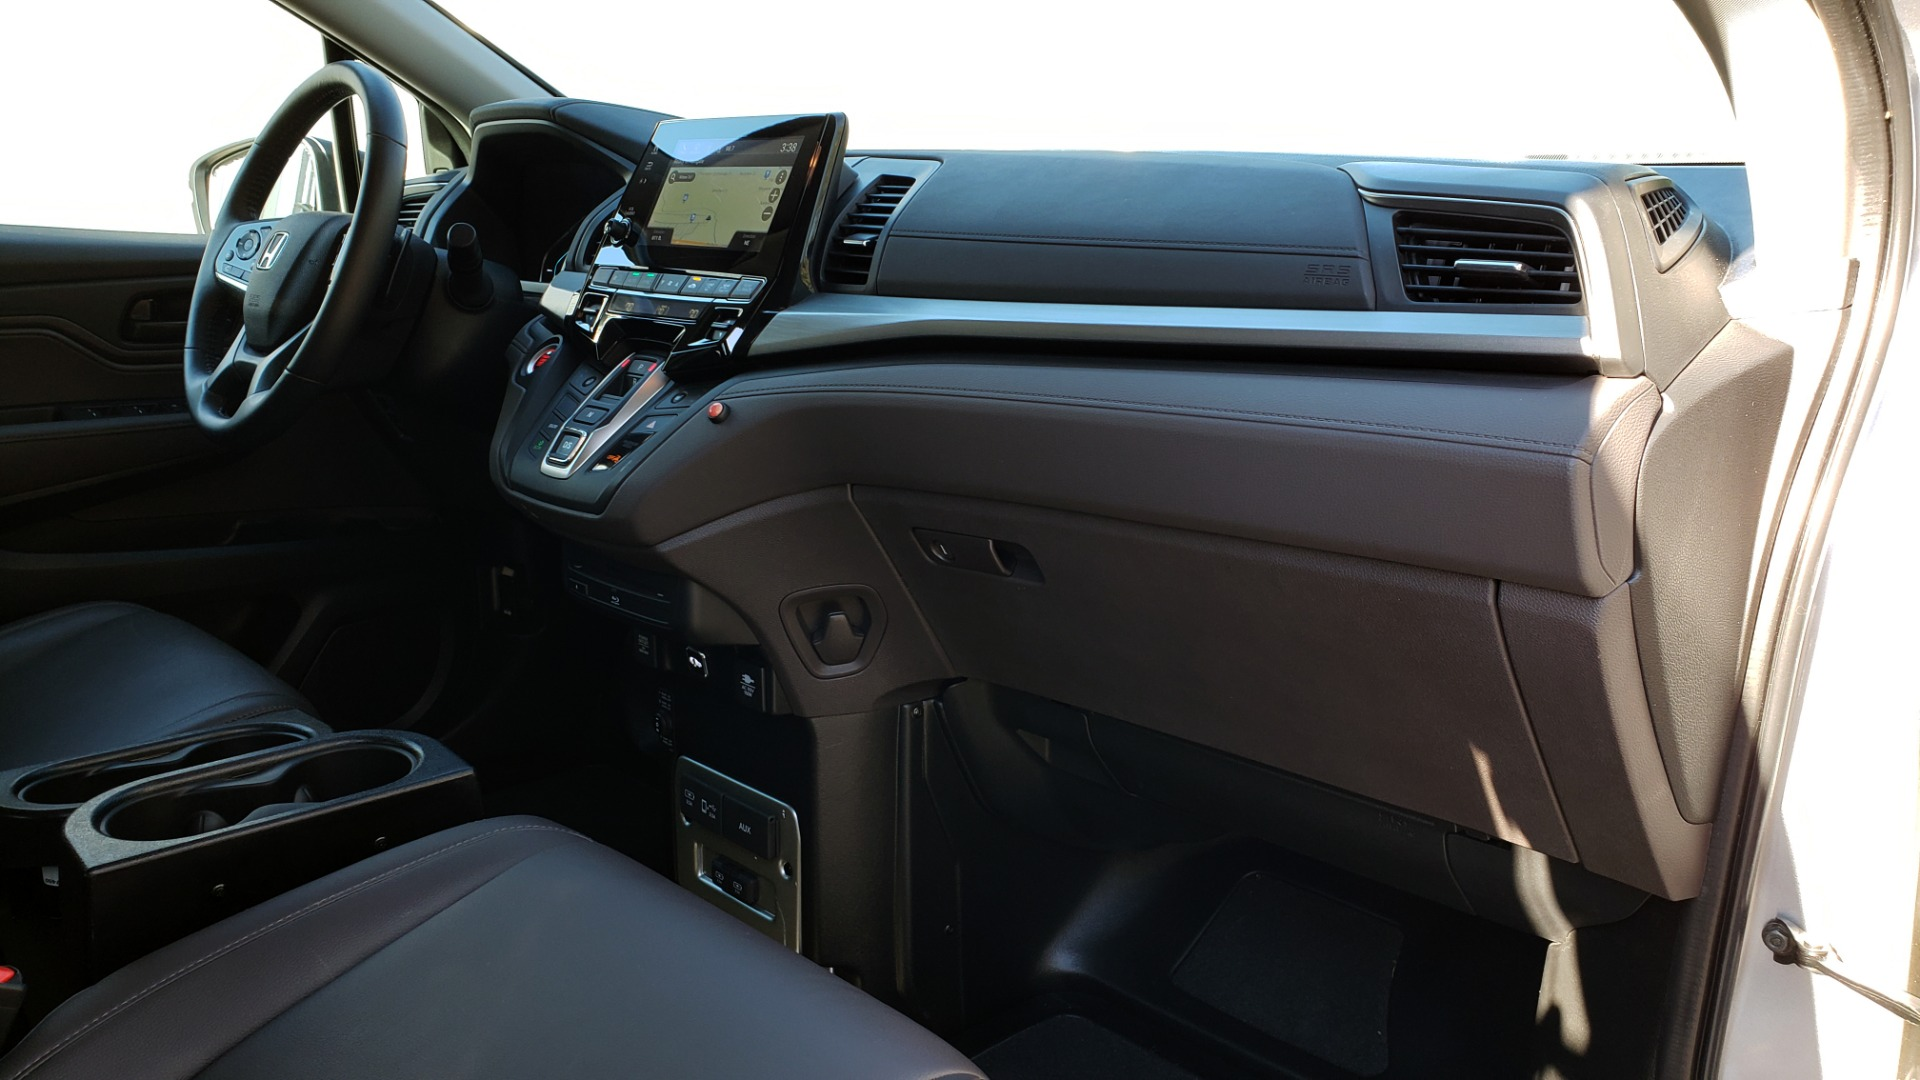 Used 2019 Honda ODYSSEY EX-L BRAUNABILITY / NAV / RES / LKA / BLUE-RAY / SUNROOF / REARVIEW for sale Sold at Formula Imports in Charlotte NC 28227 40